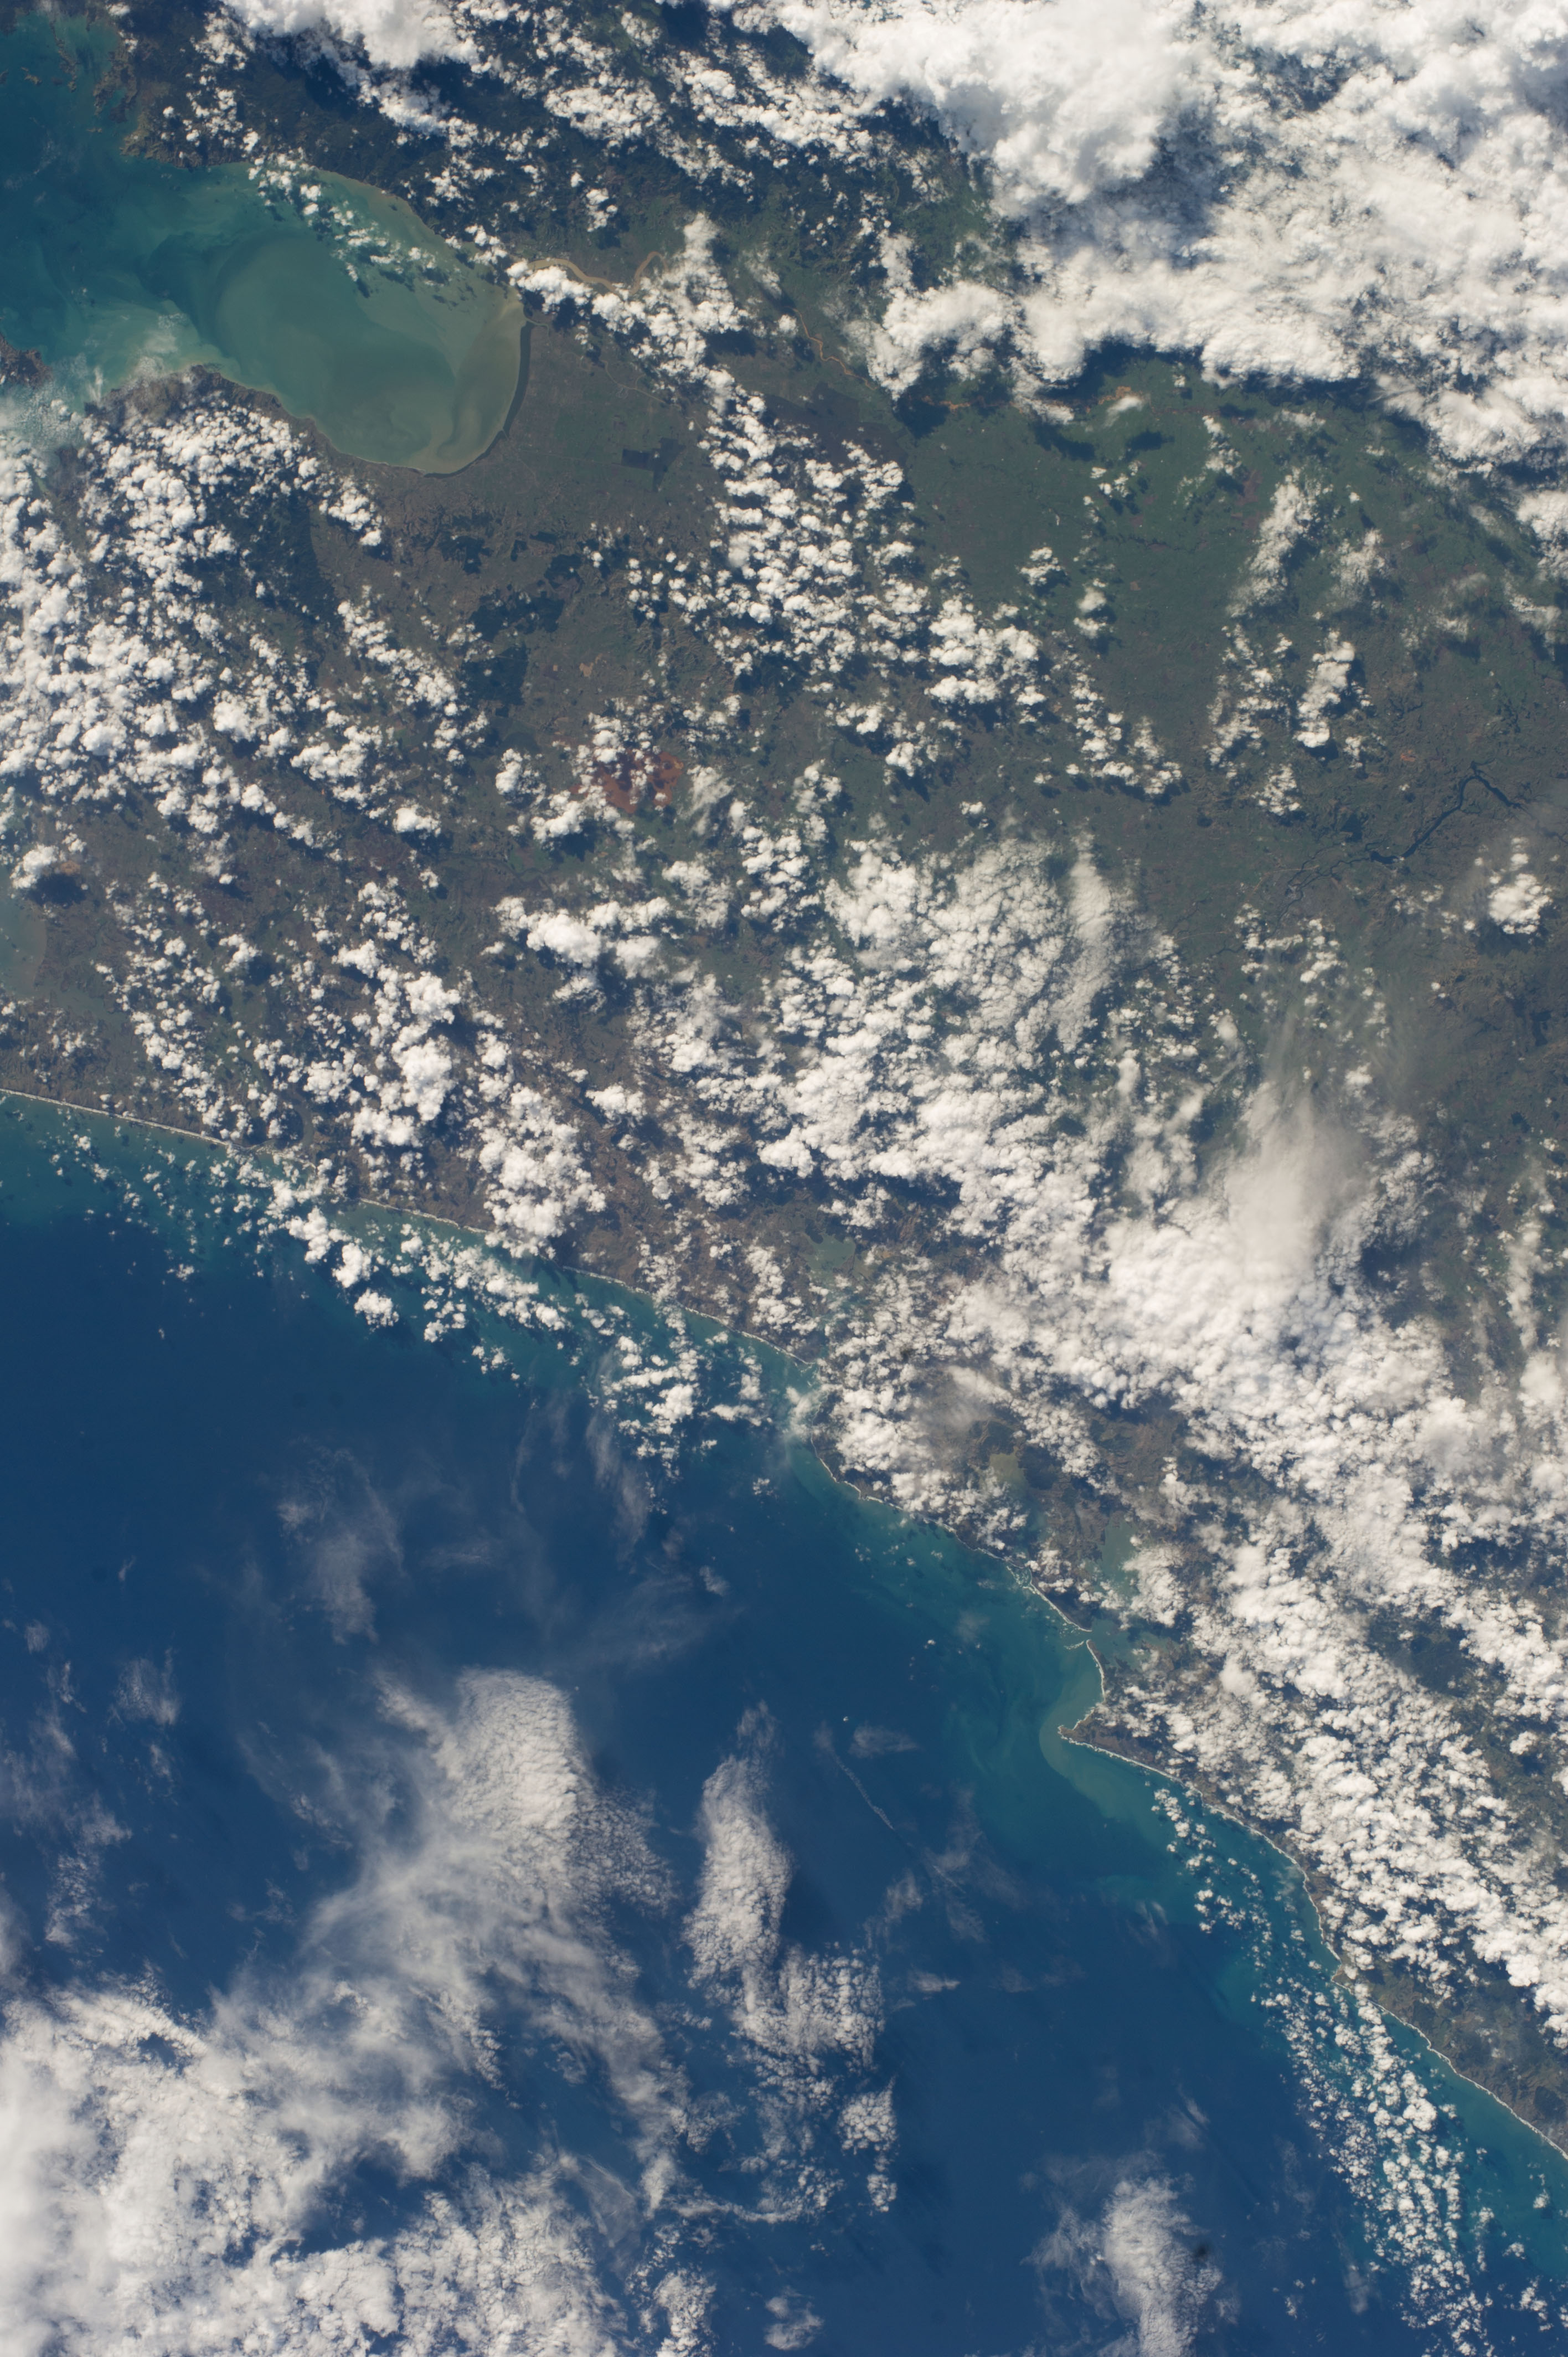 ISS039-E-012863